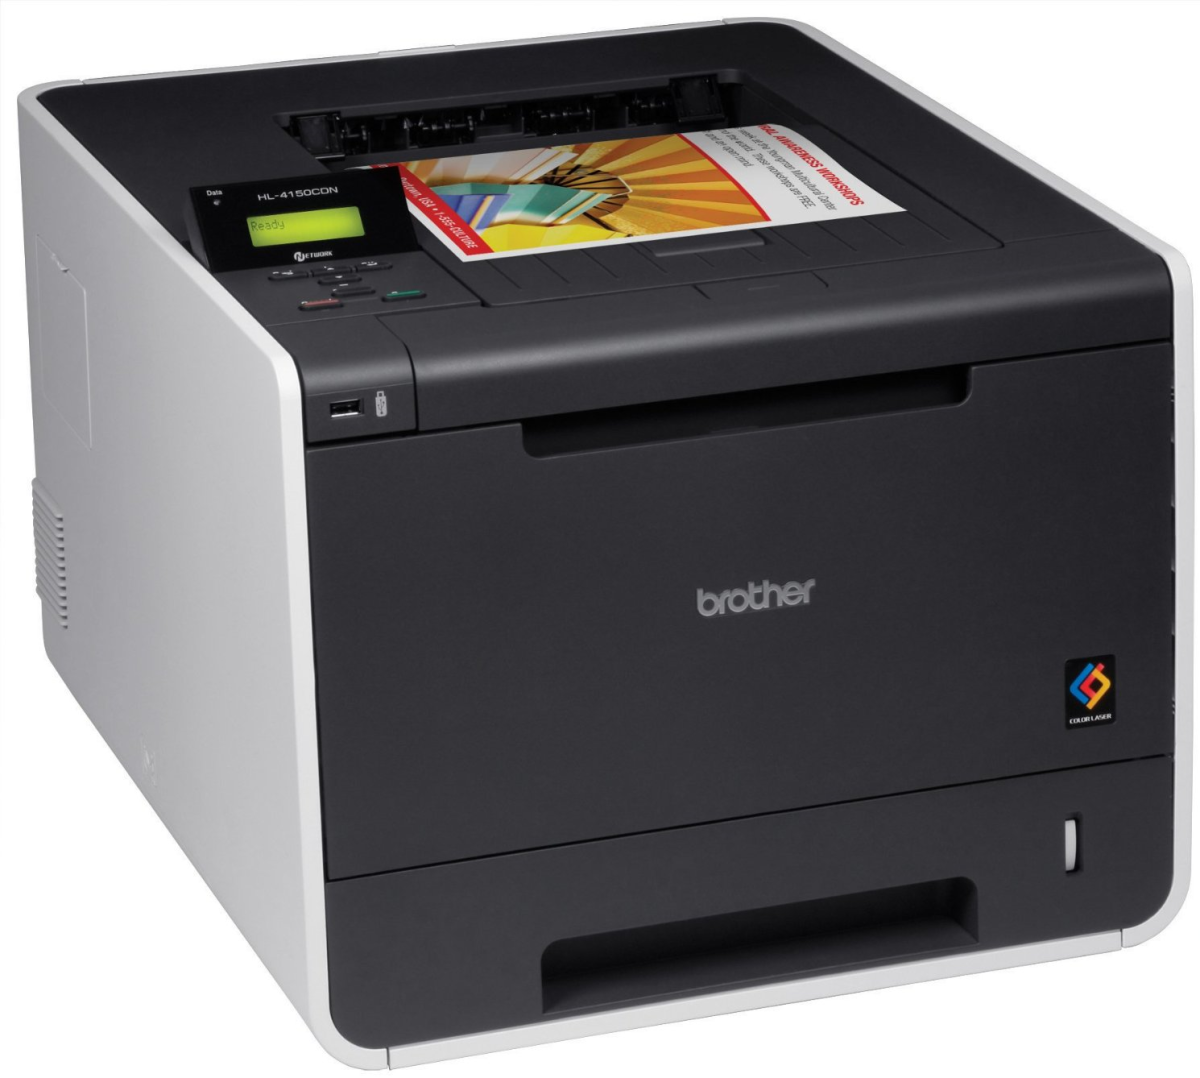 Brother laser printer HL4150CDN with Color duplex printing and networking